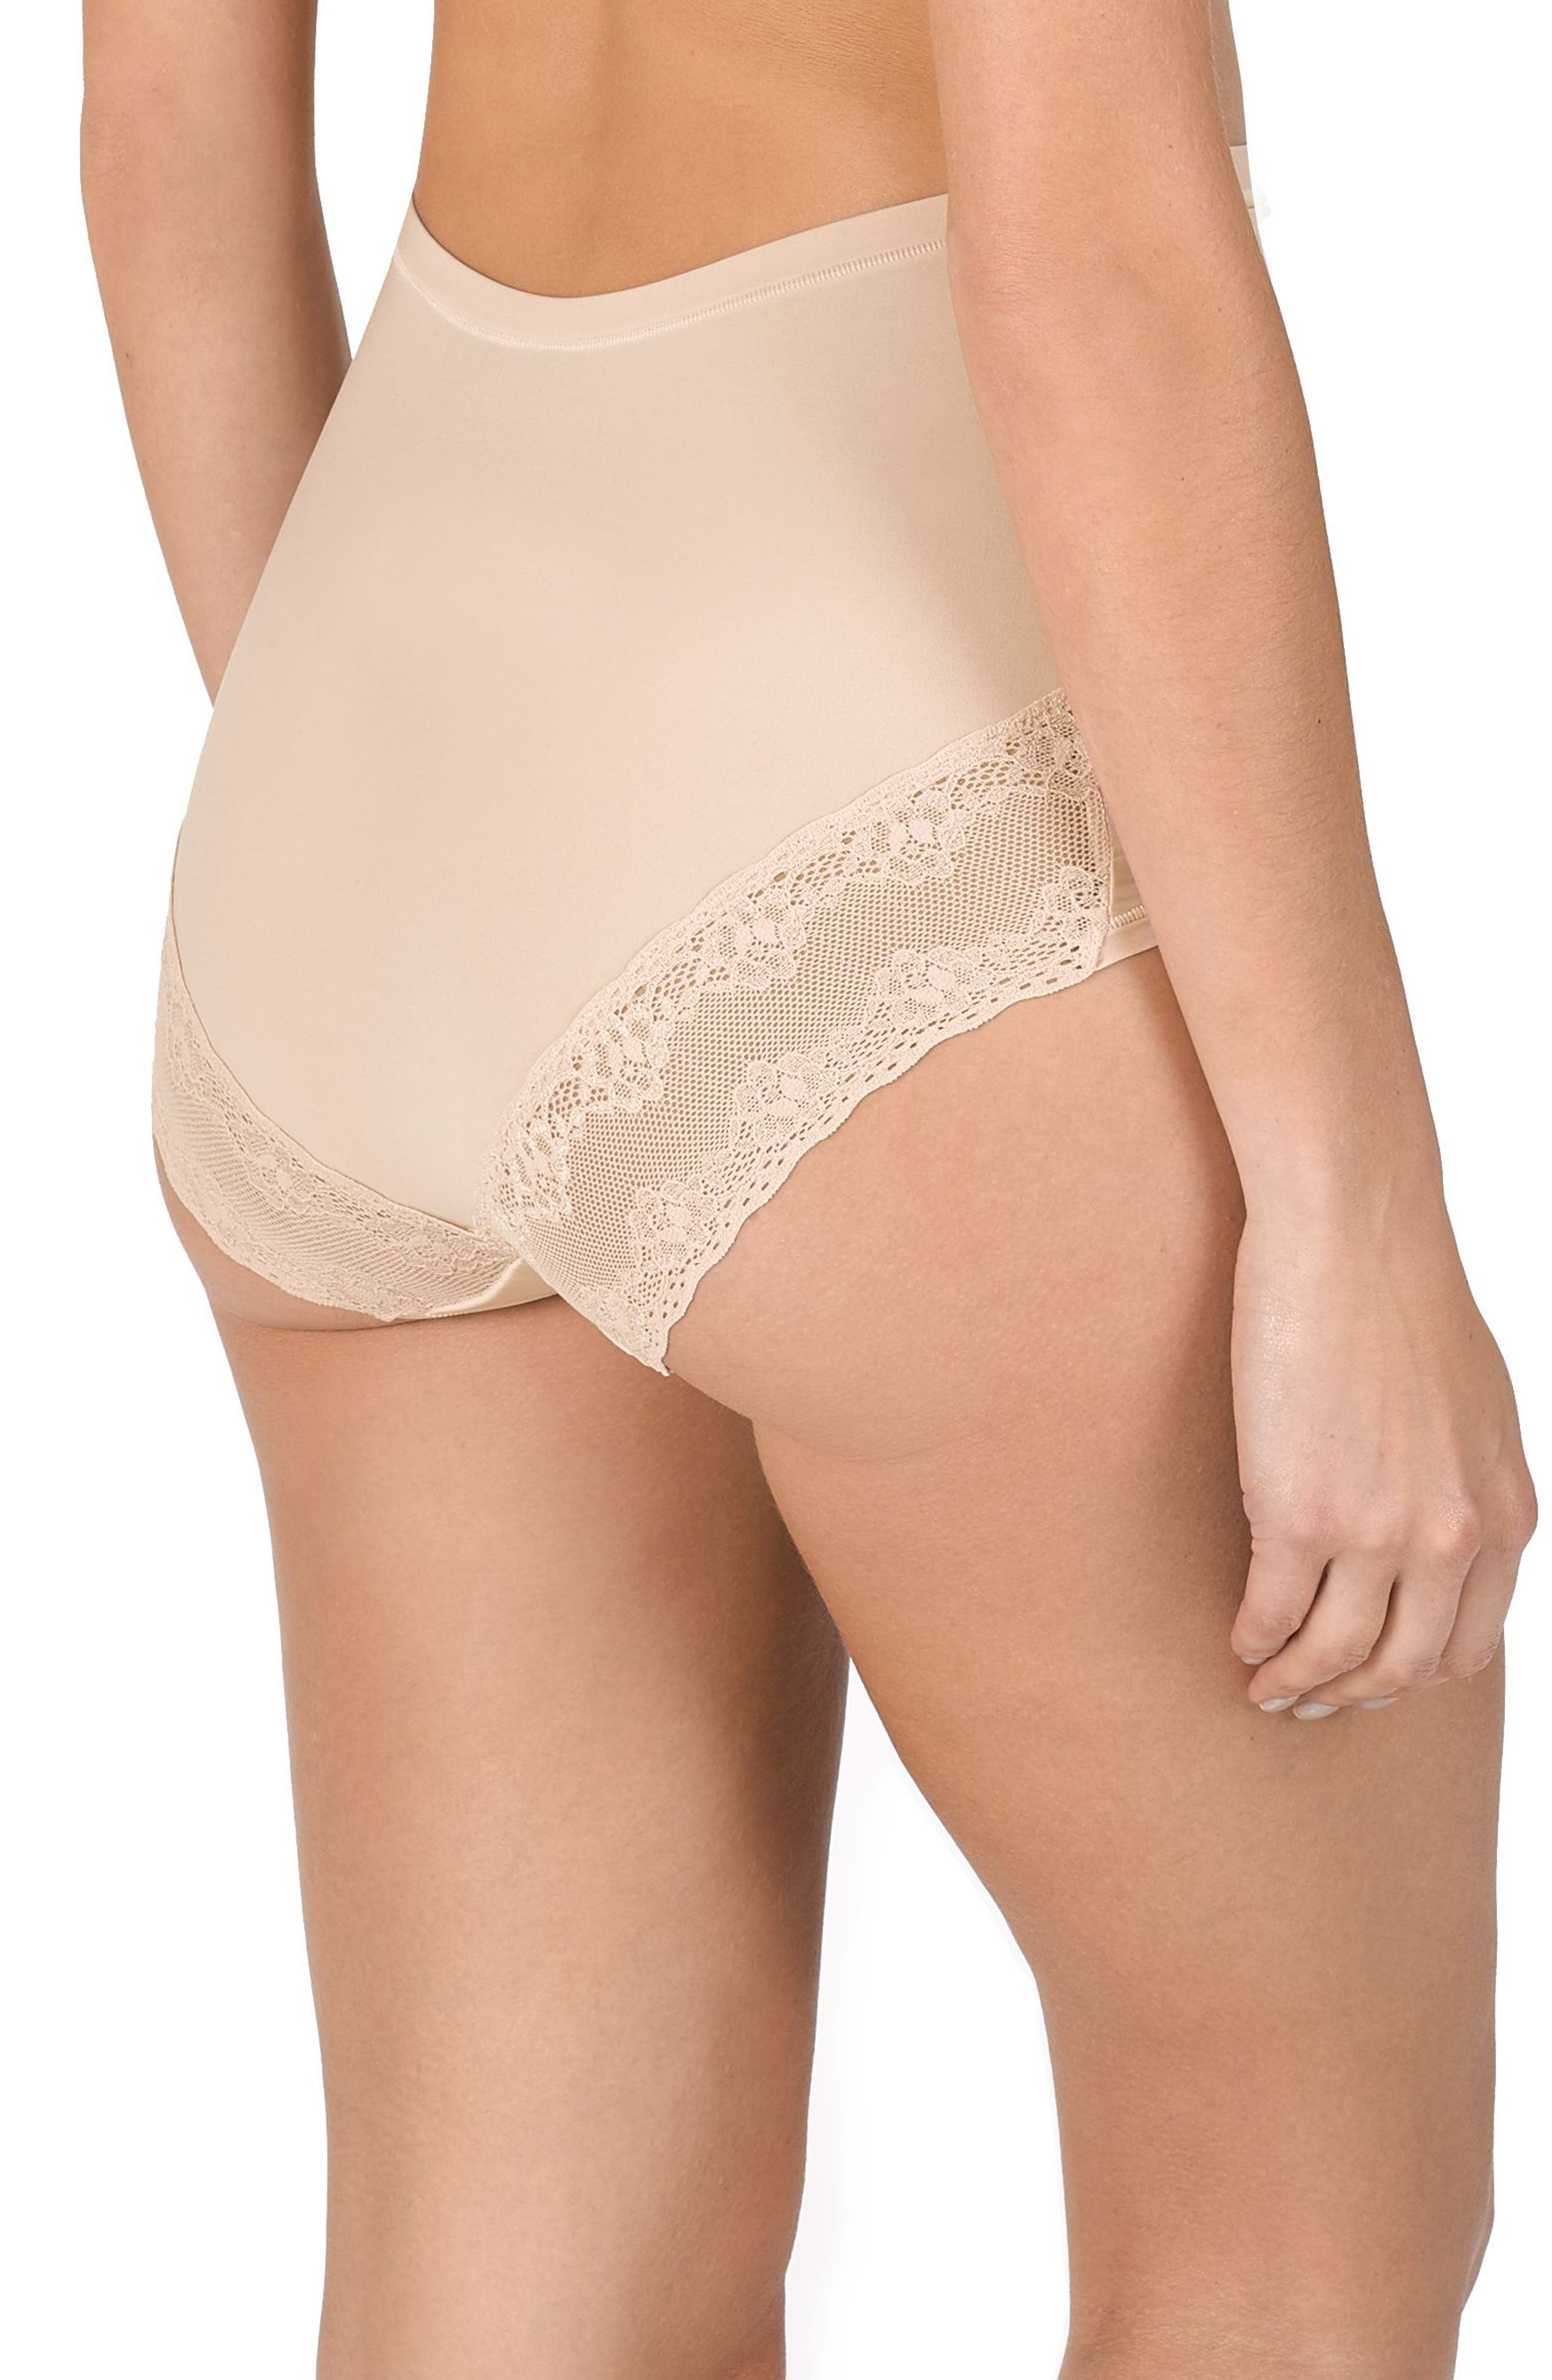 Bliss Maternity Briefs,                             Alternate thumbnail 2, color,                             CAMEO ROSE